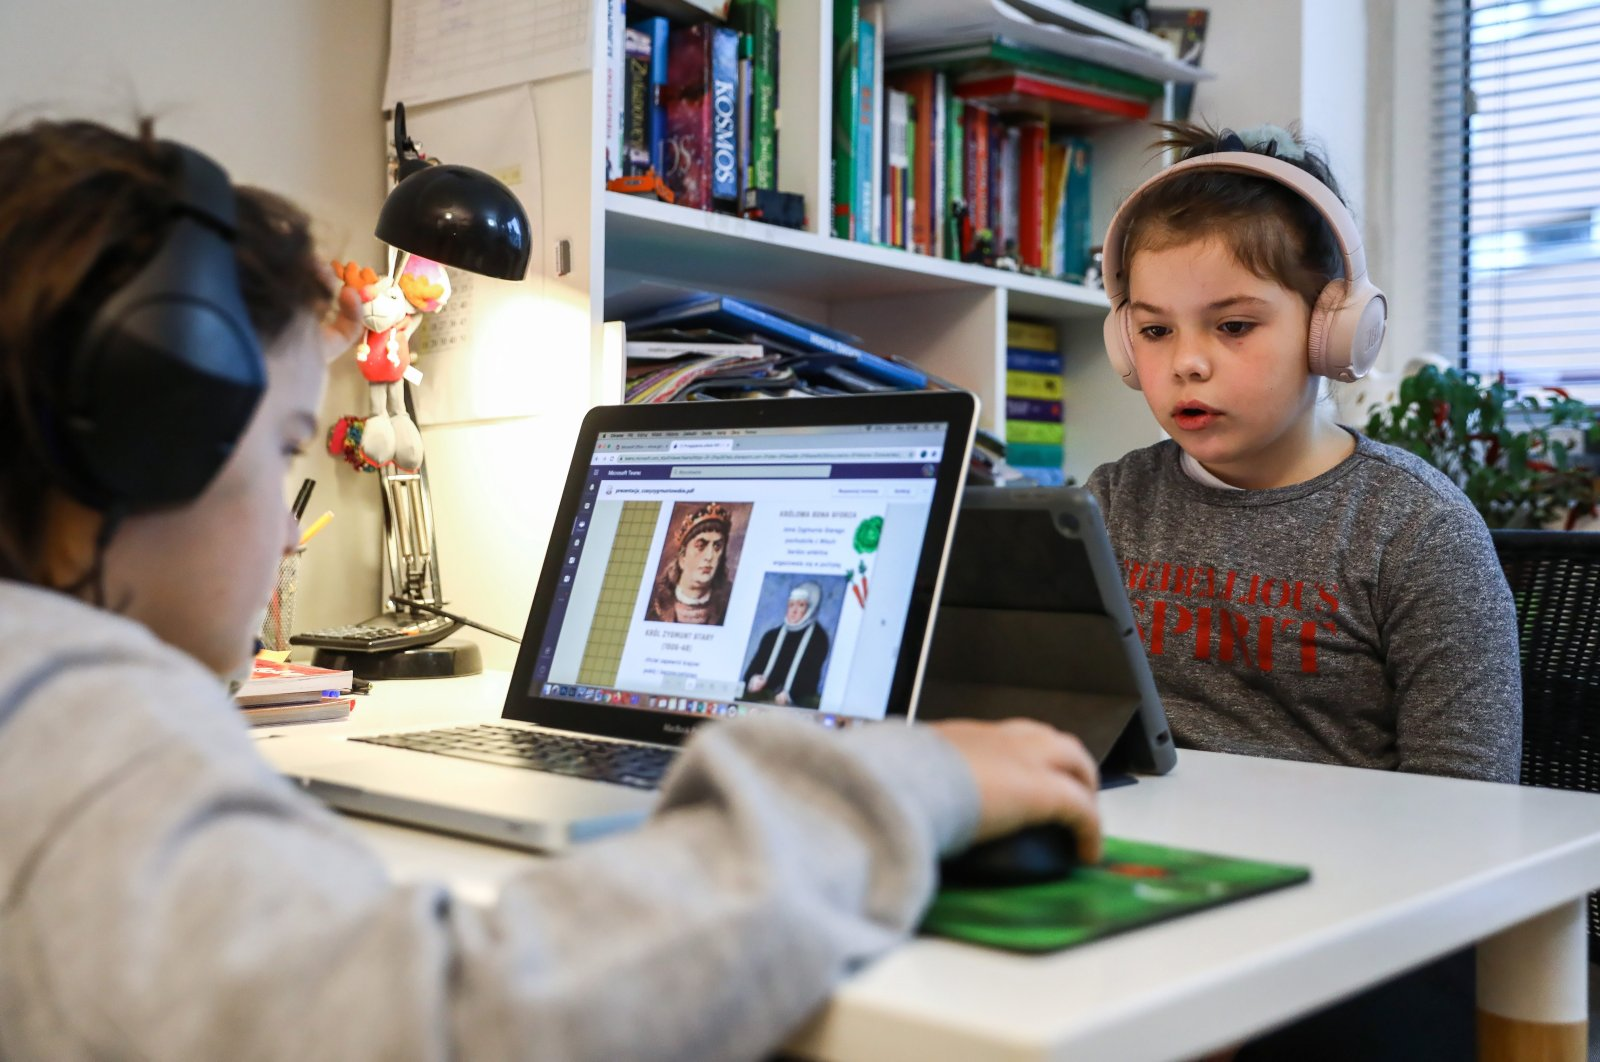 Children of a primary school study online from home in Warsaw, Poland, November 9, 2020, amid the ongoing COVID-19 pandemic. (EPA Photo)